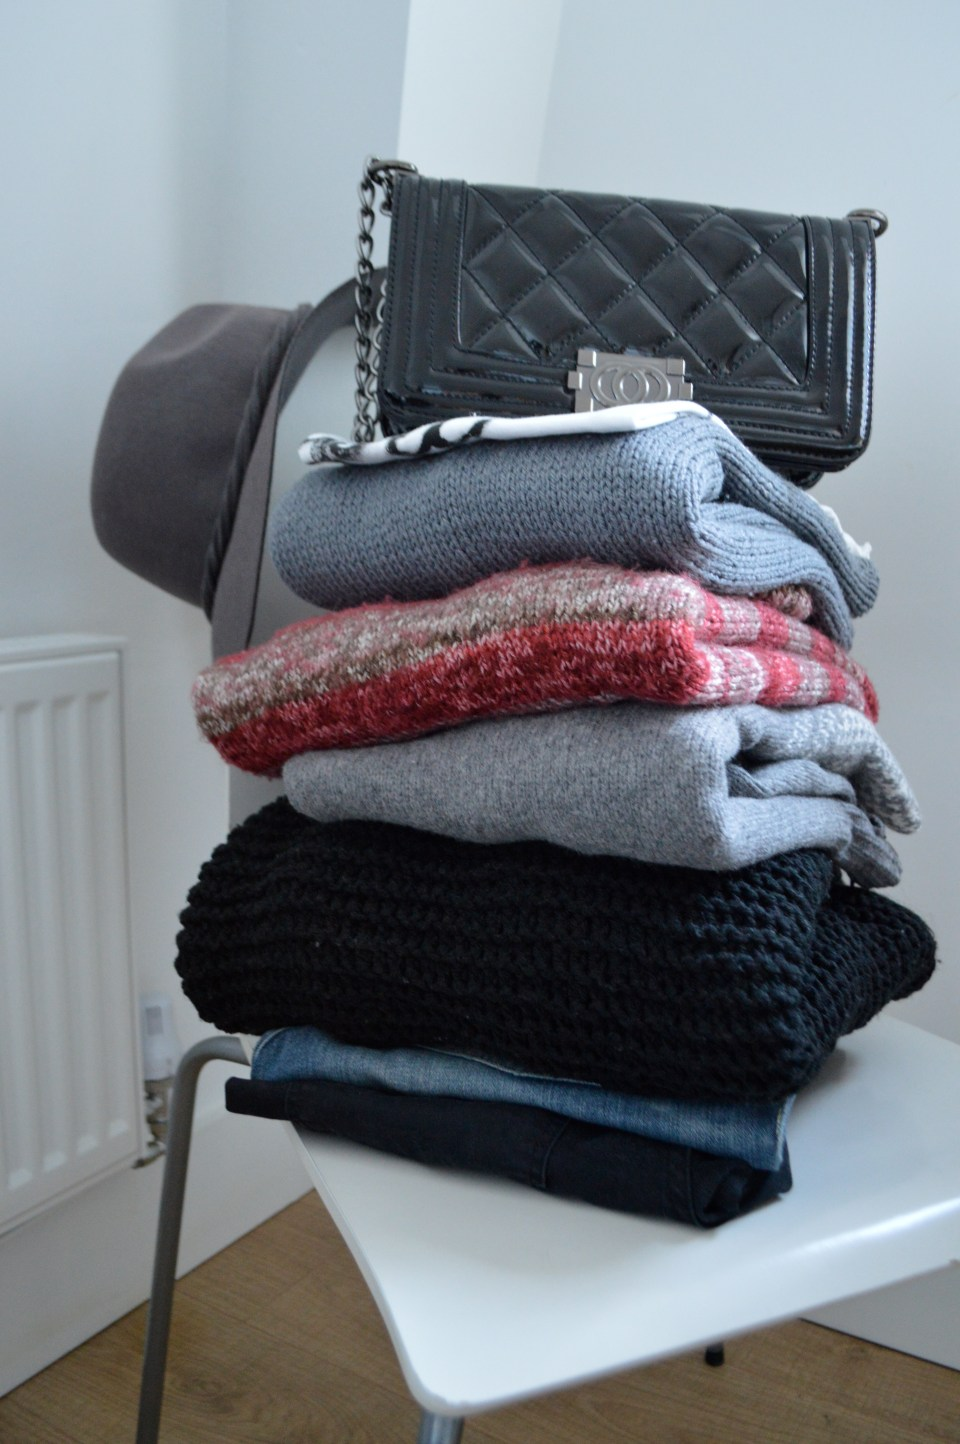 Capsule Wardrobe my way - clear out